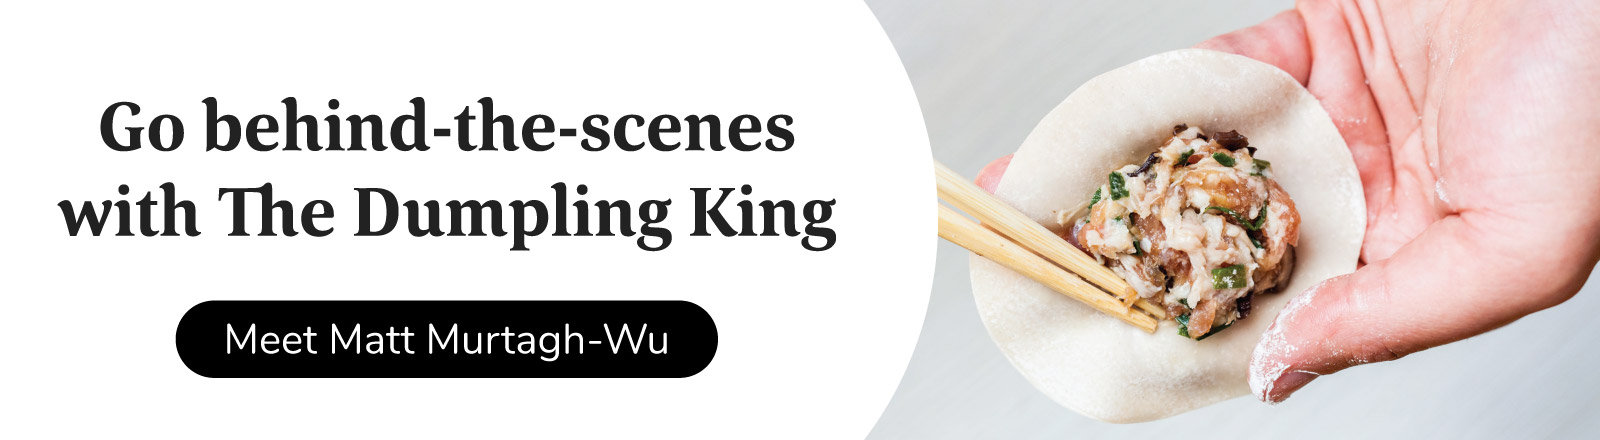 Go behind-the-scenes with The Dumpling King